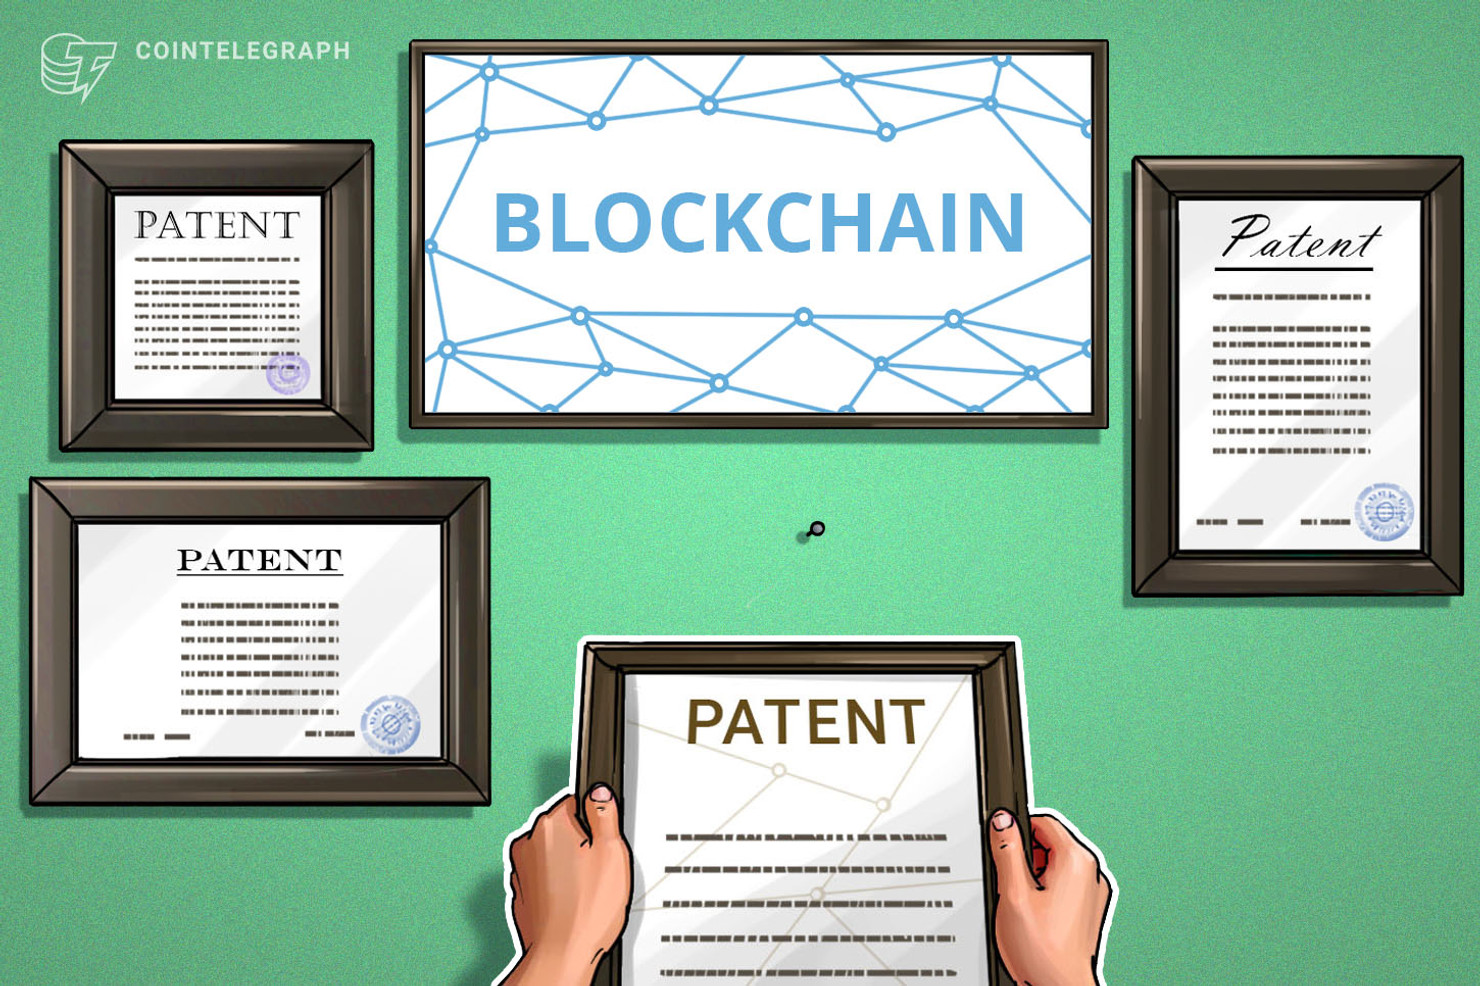 Sony and Other Major Multinationals File 212 Blockchain Patents in China in 2020